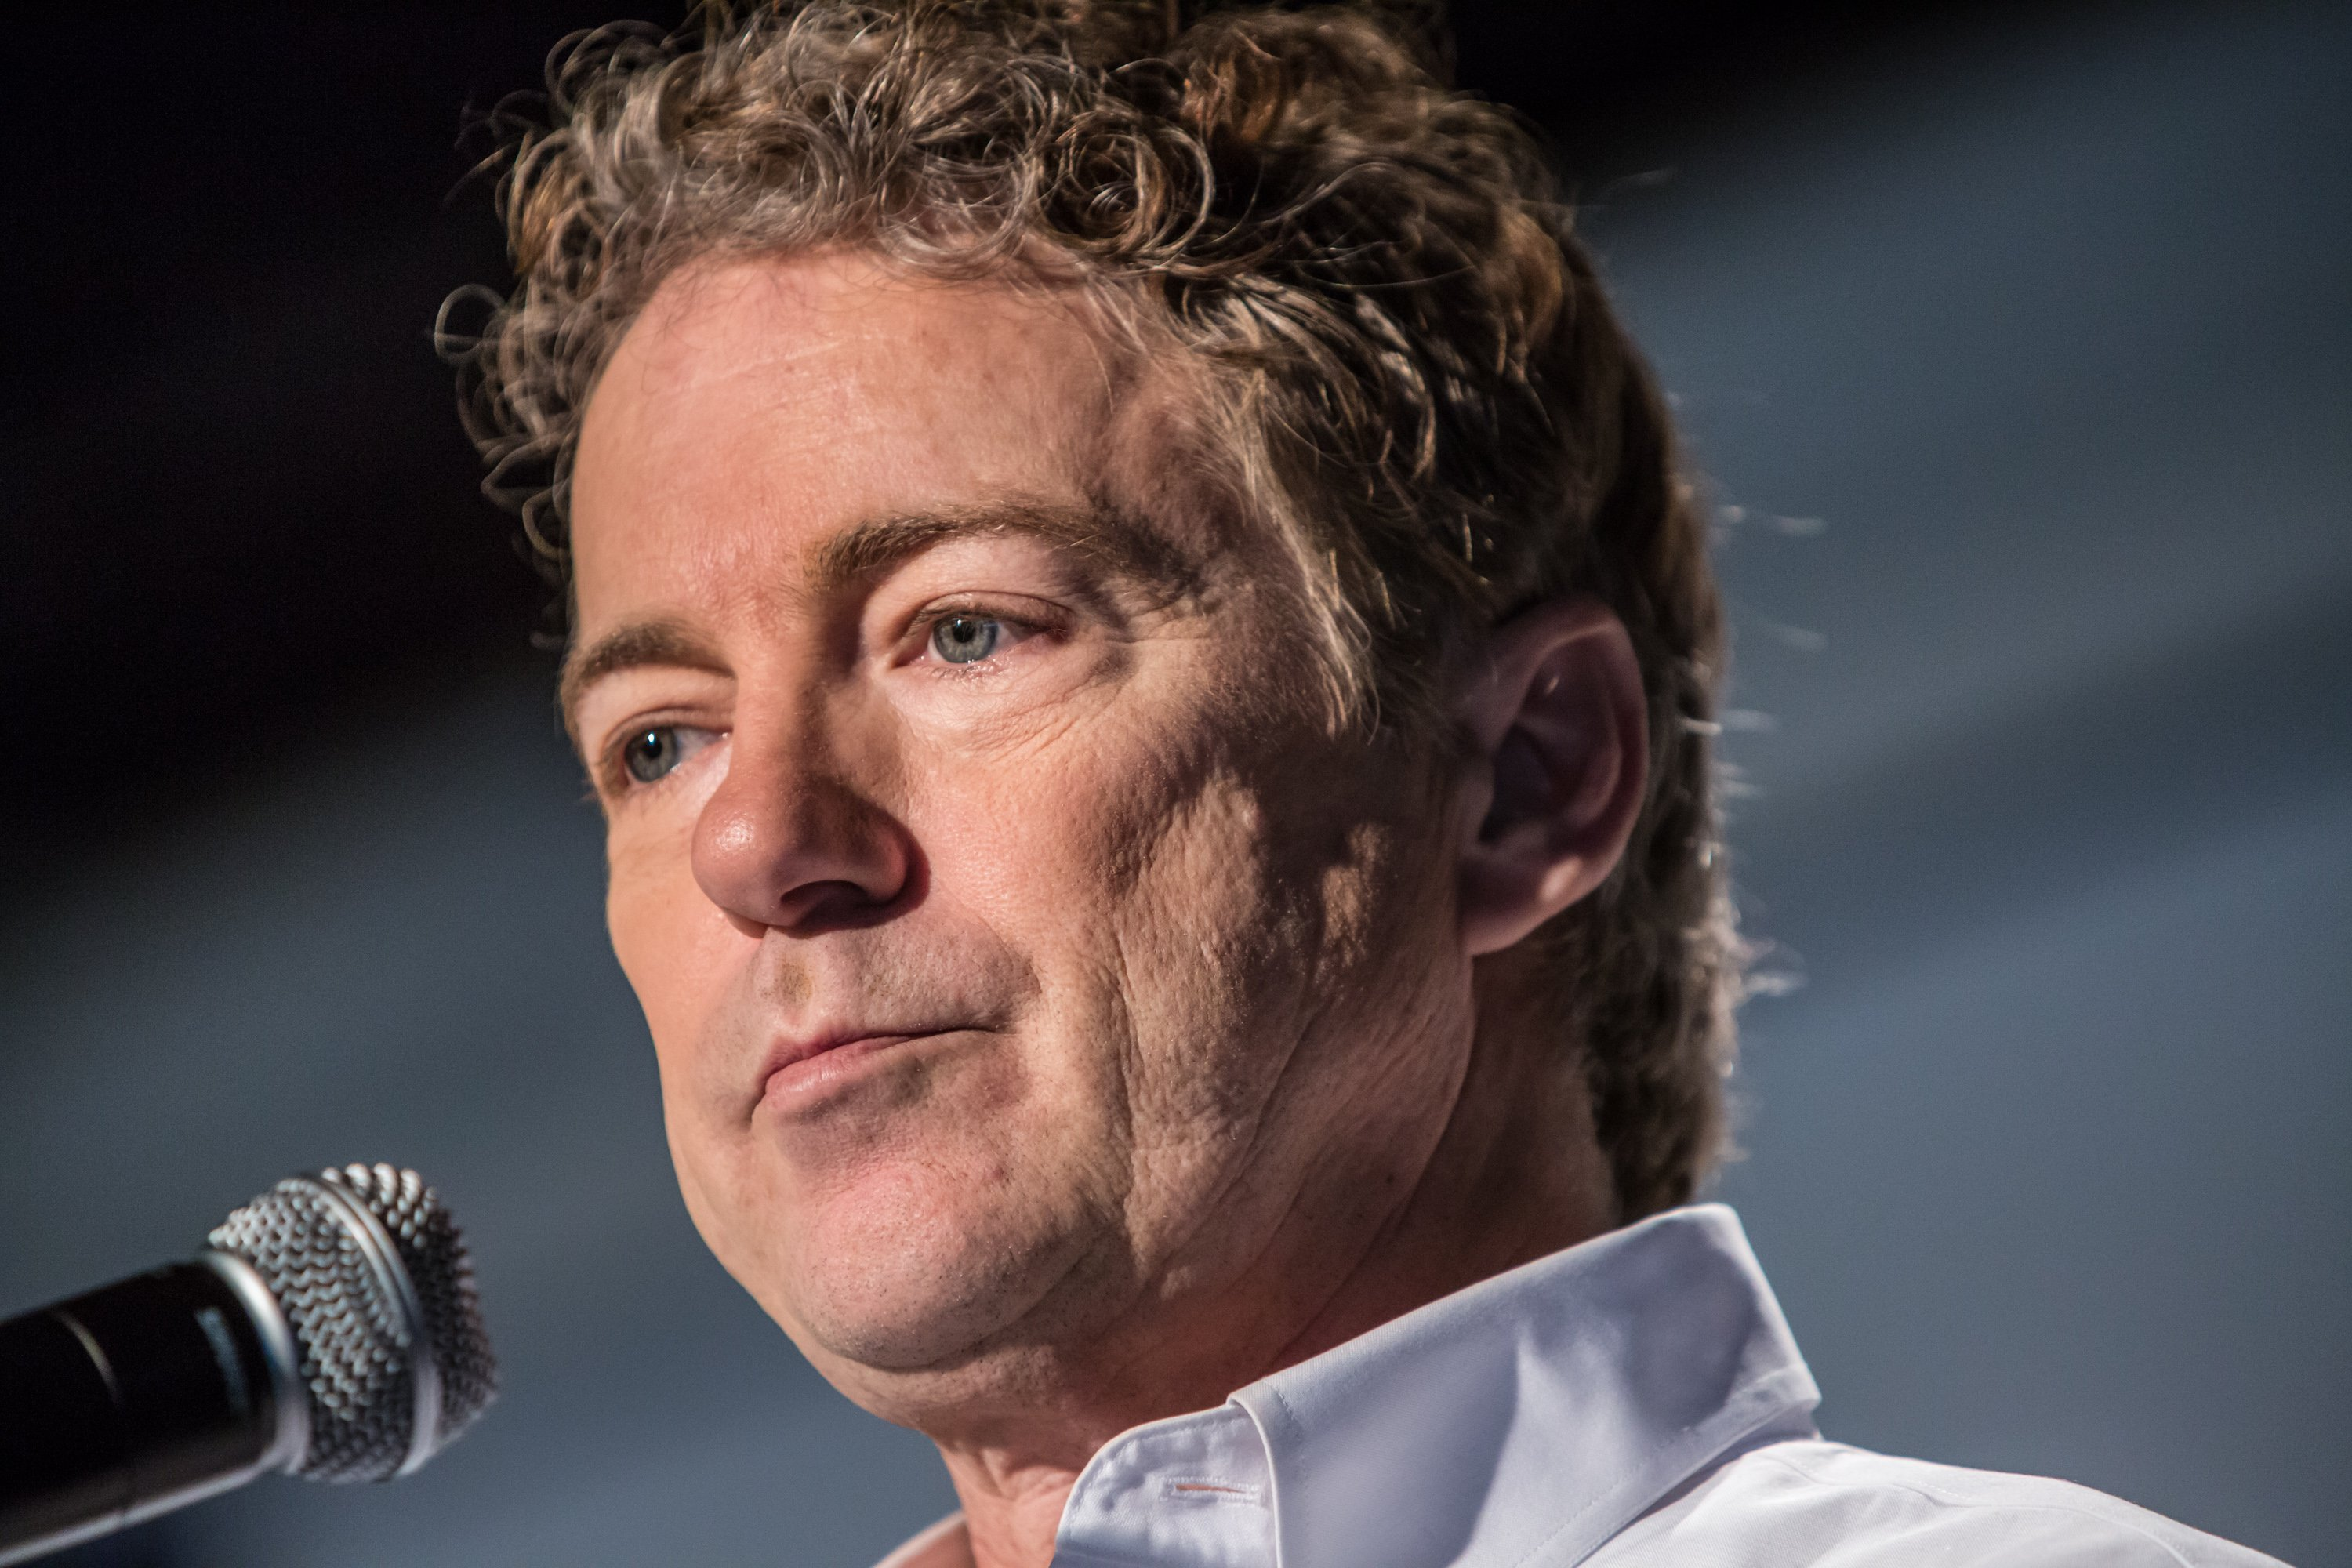 Rand Paul speaks at a campaign event at Drake University on Jan. 28, 2016 in Des Moines, Iowa.